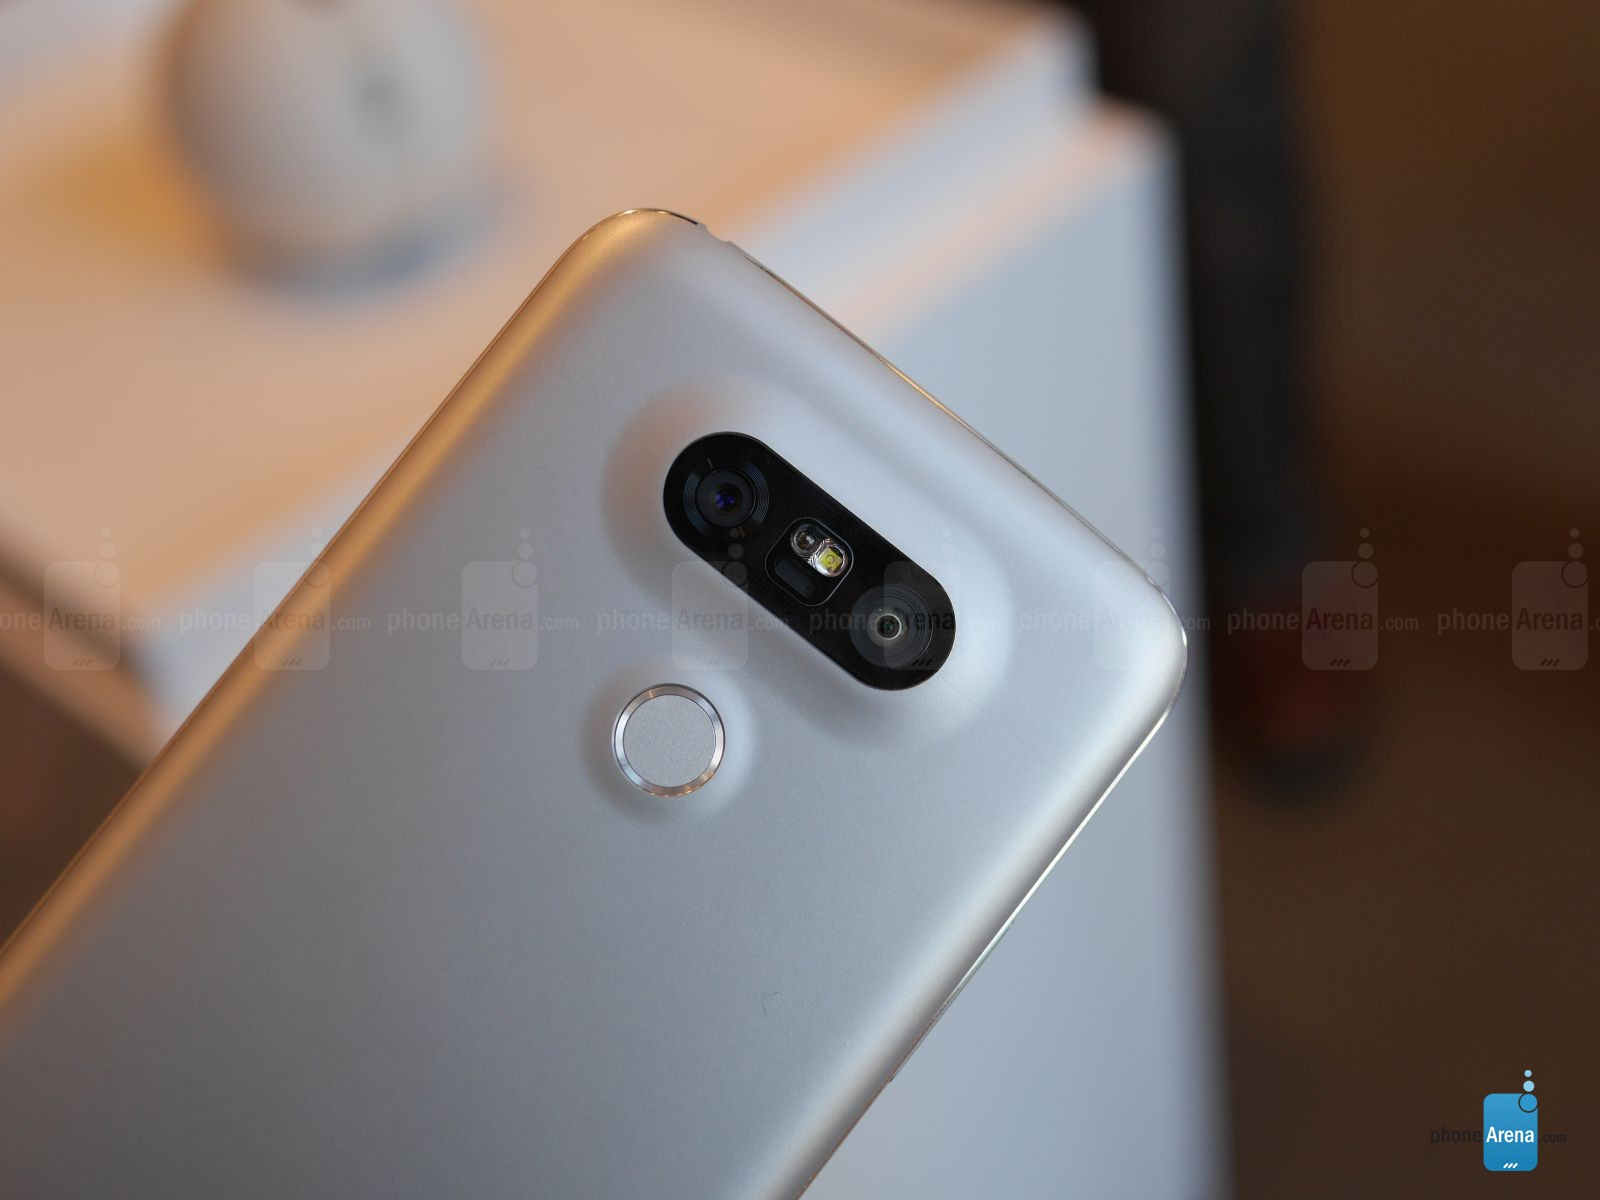 LG-G5s-wide-angle-rear-camera